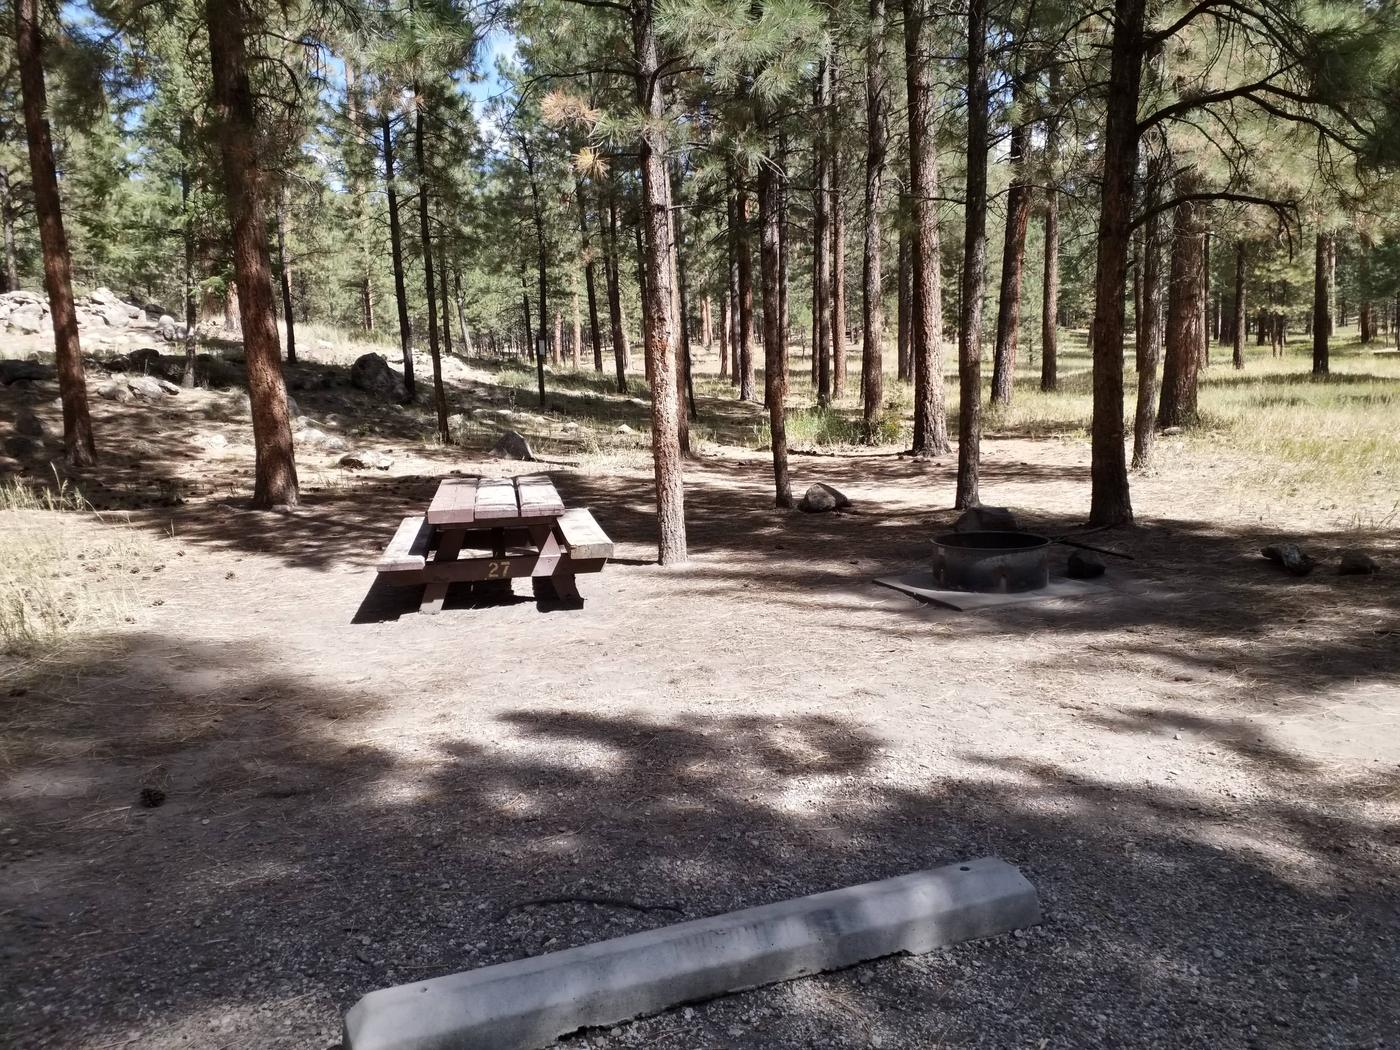 Site 27 provides a picnic table, metal fire ring, and back in parking.Site 27